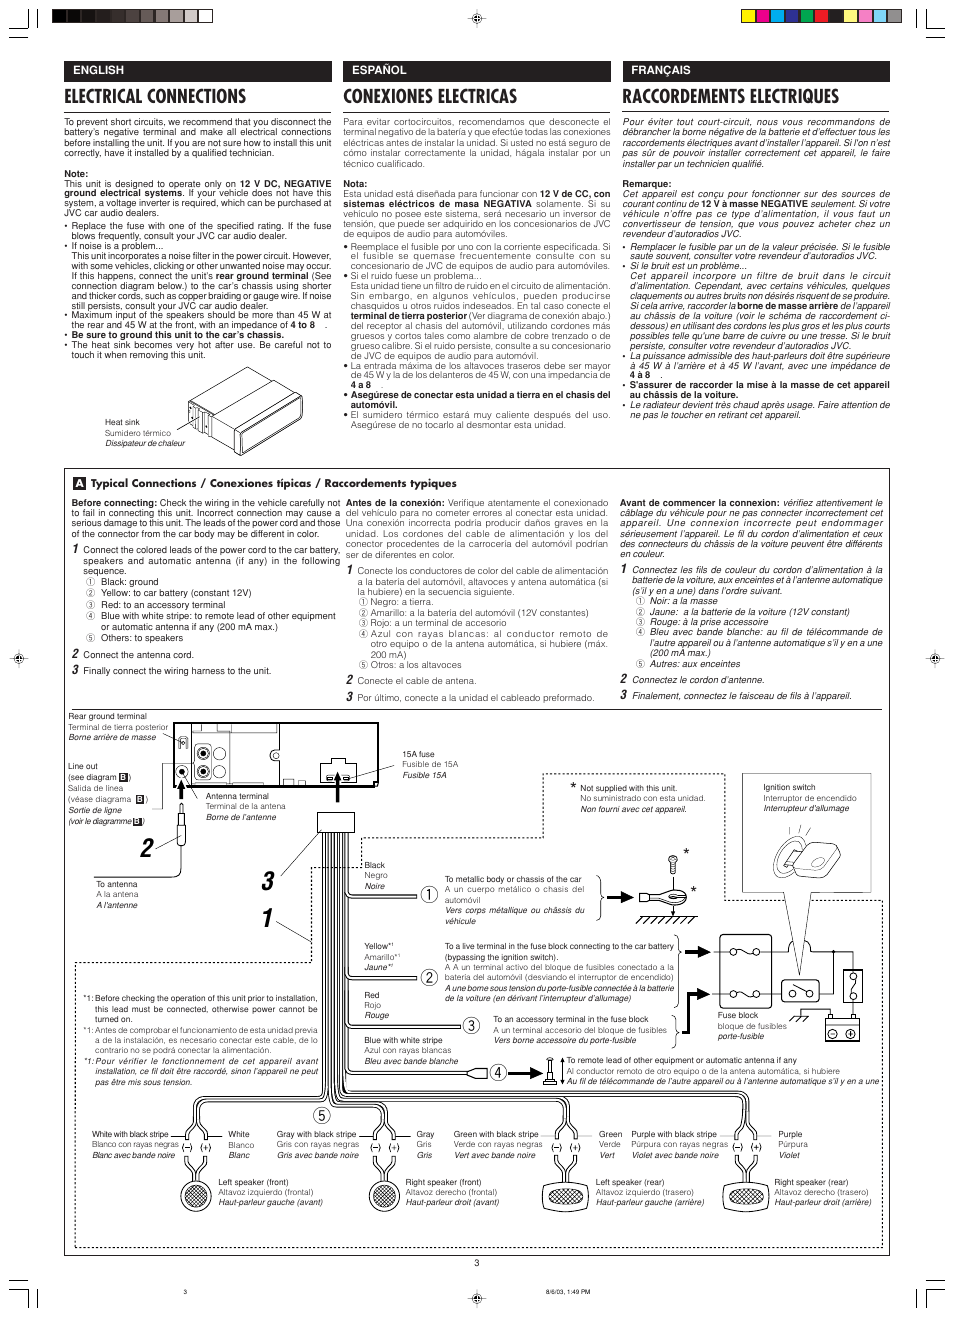 Jvc Kd S5050 Wiring Diagram Electrical S590 Schematics And Diagrams Radio Harness